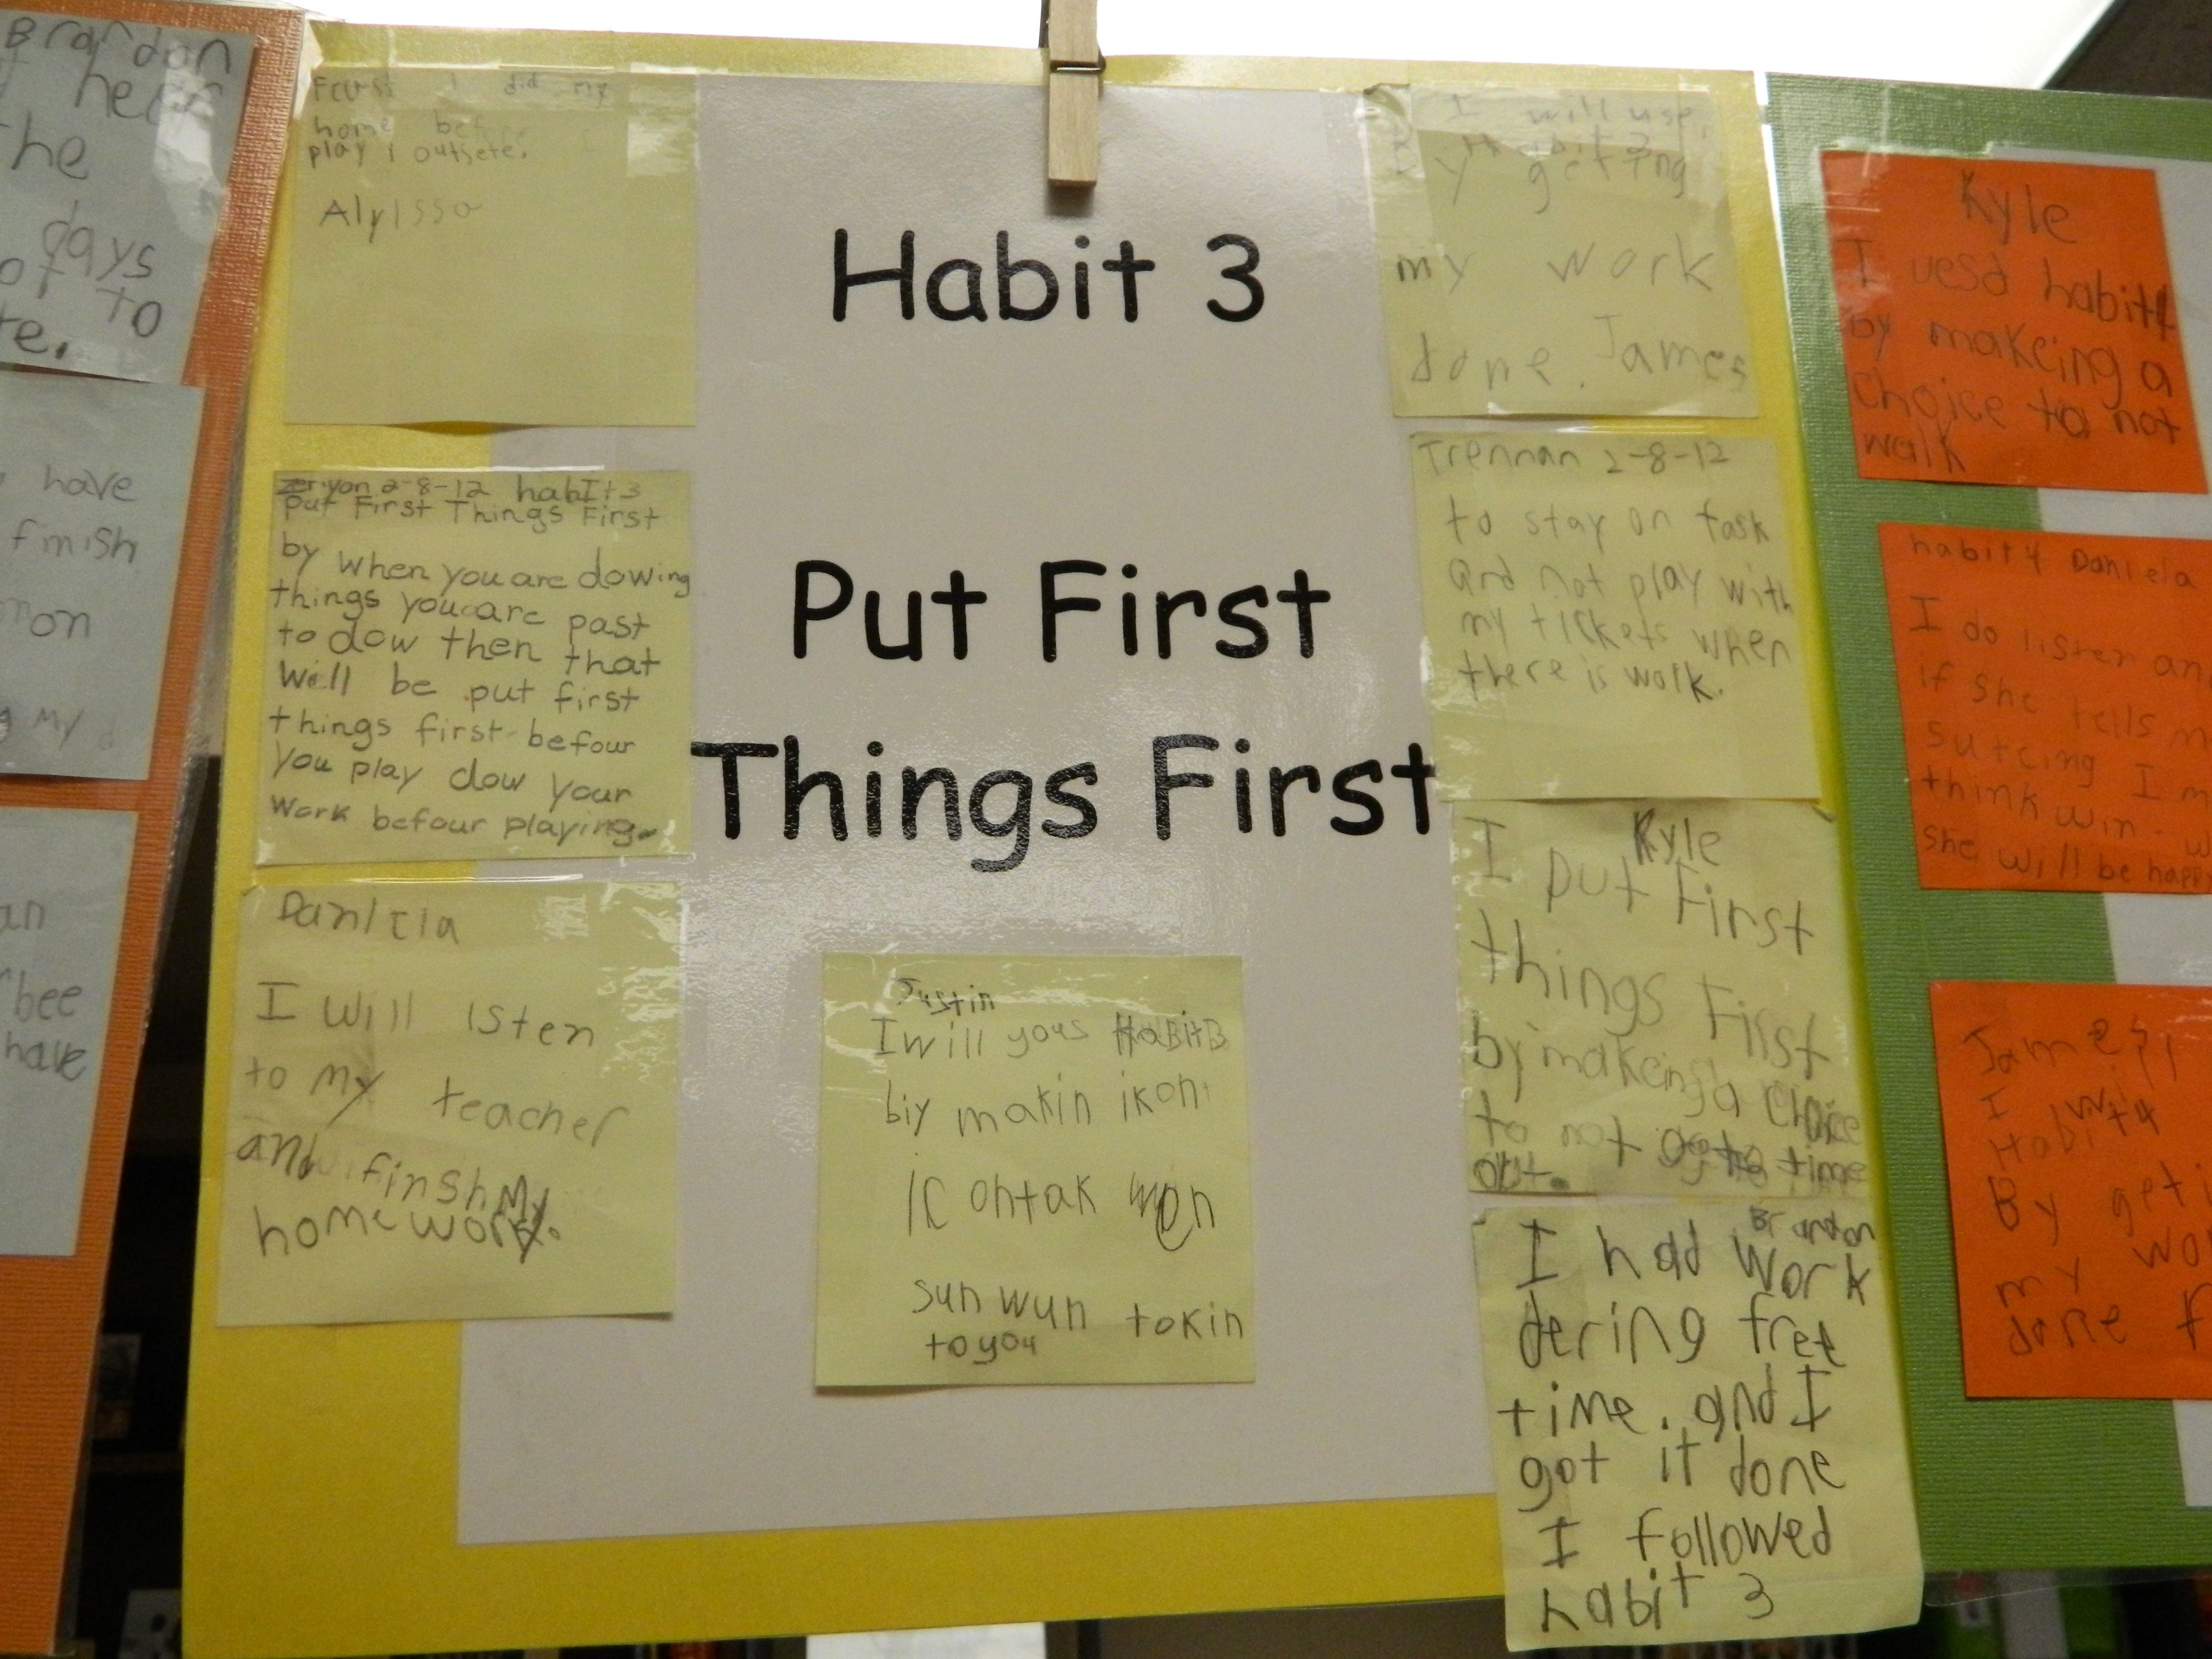 Young Students Come Up With Different Ways That They Can Follow Habit 3